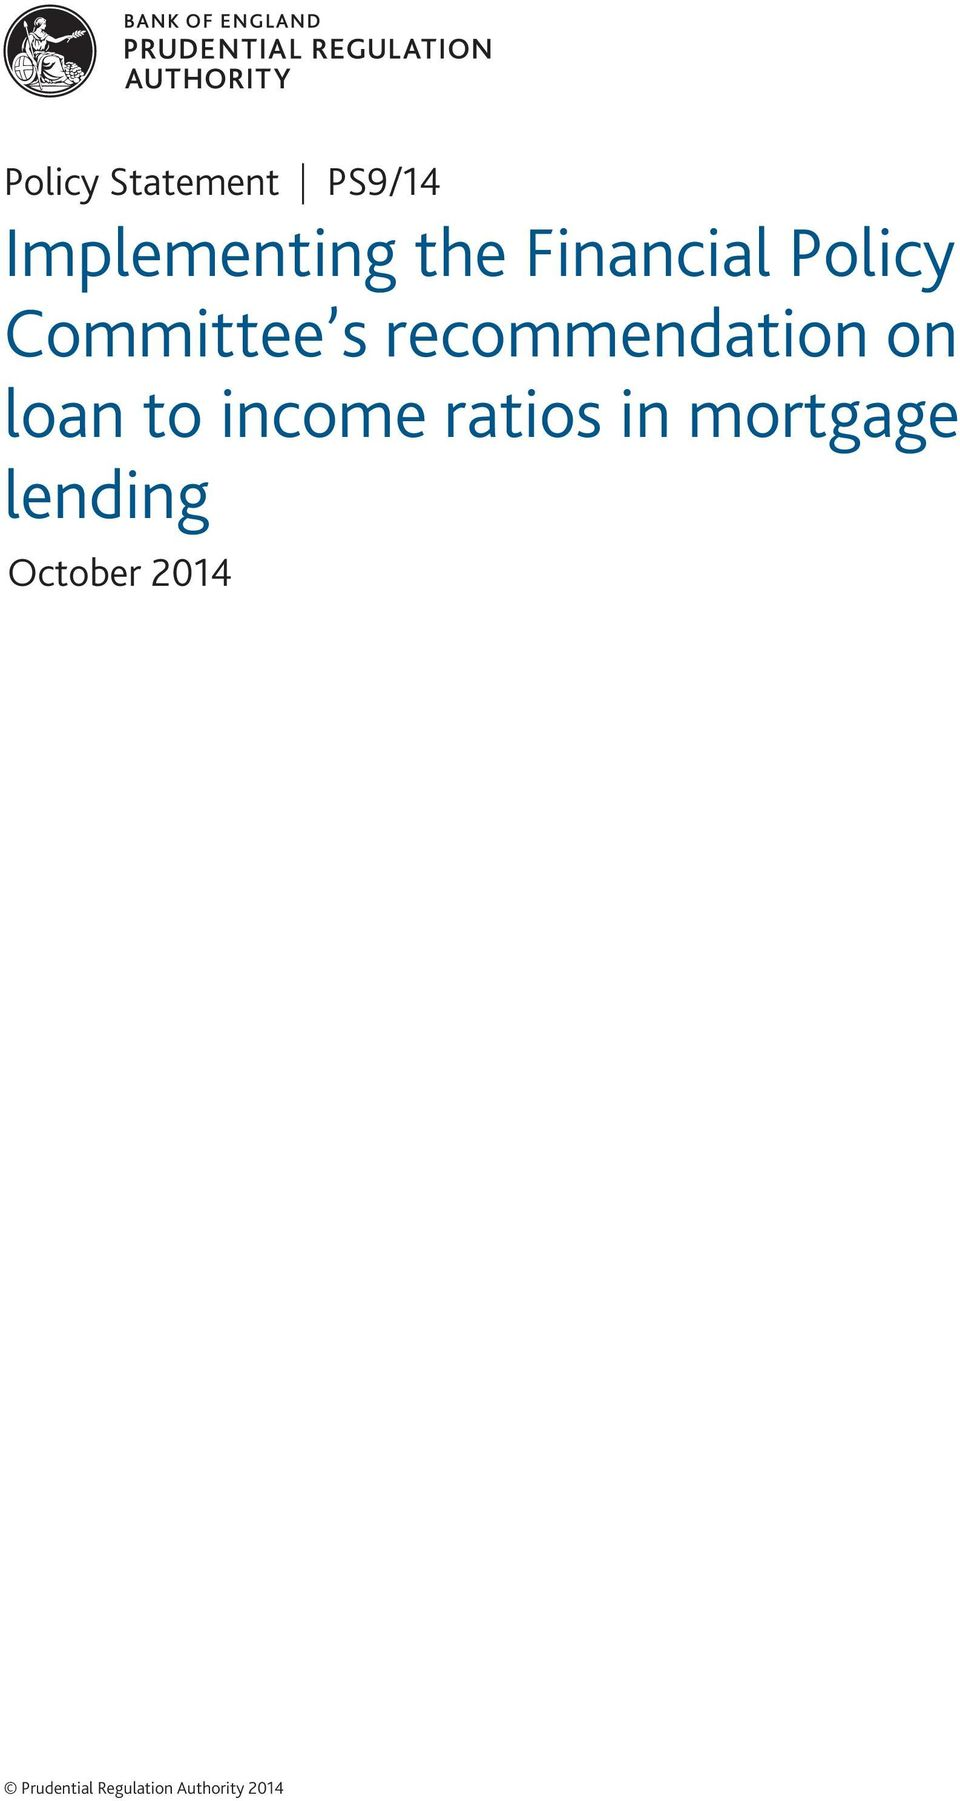 on loan to income ratios in mortgage lending